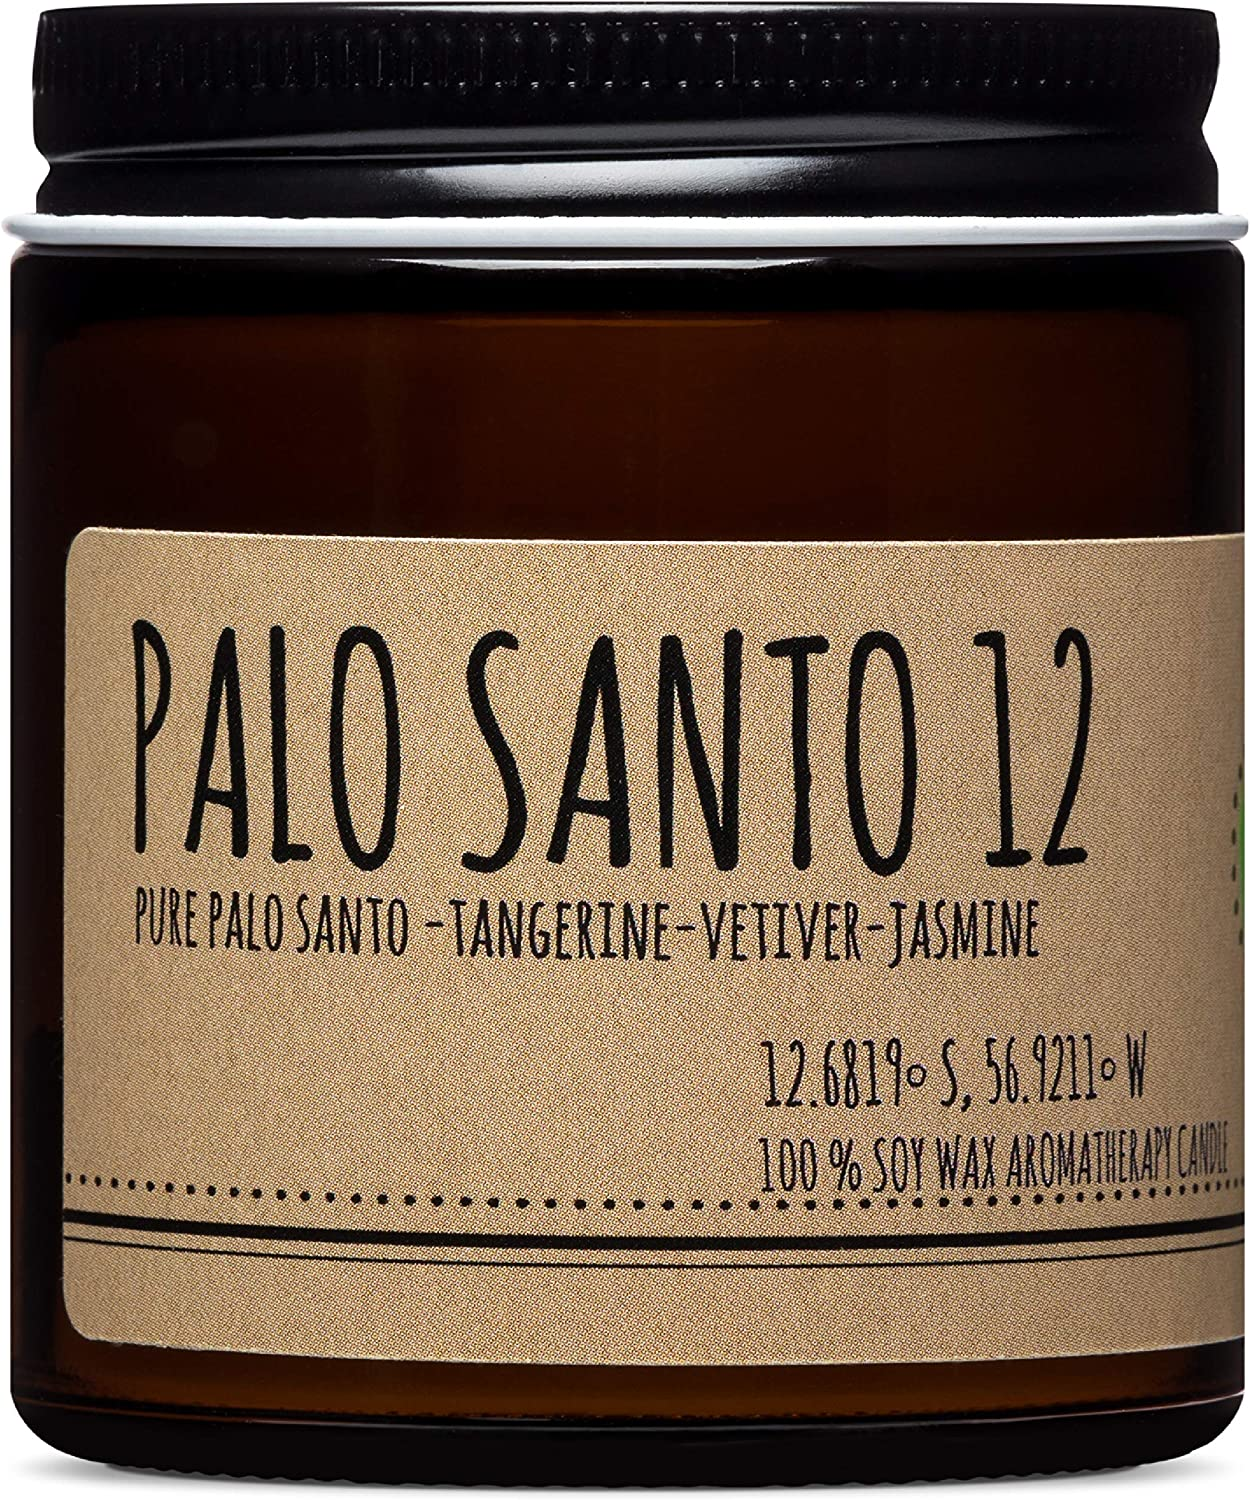 Maison Palo Santo Soy Limited price sale Wax Tangerine Candle Over item handling ☆ Vetive -